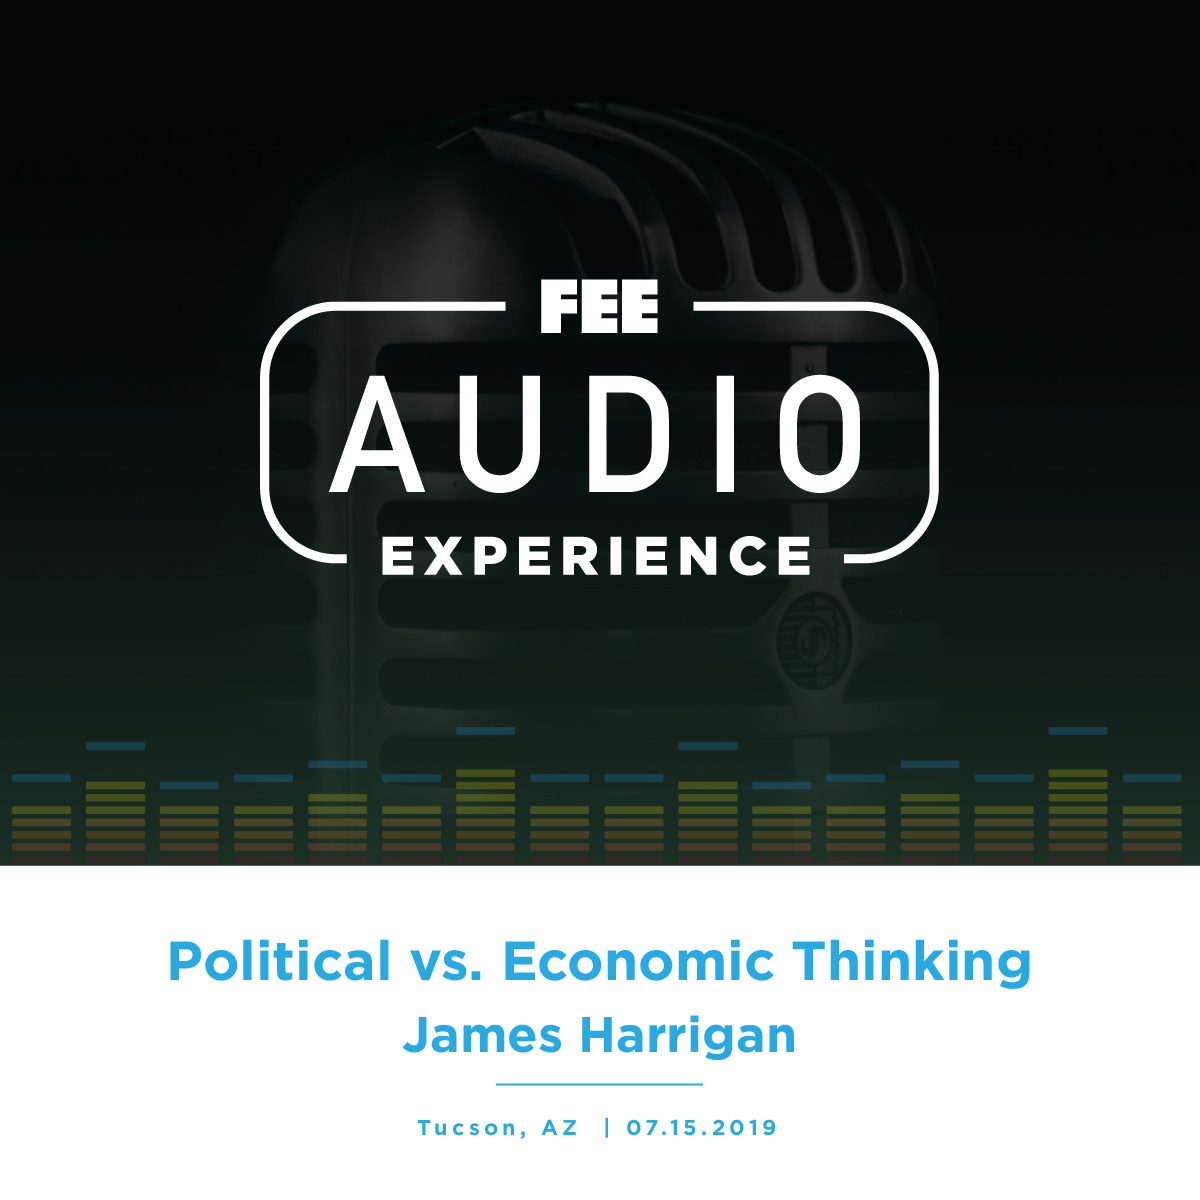 University of Arizona 2019 | Political vs. Economic Thinking